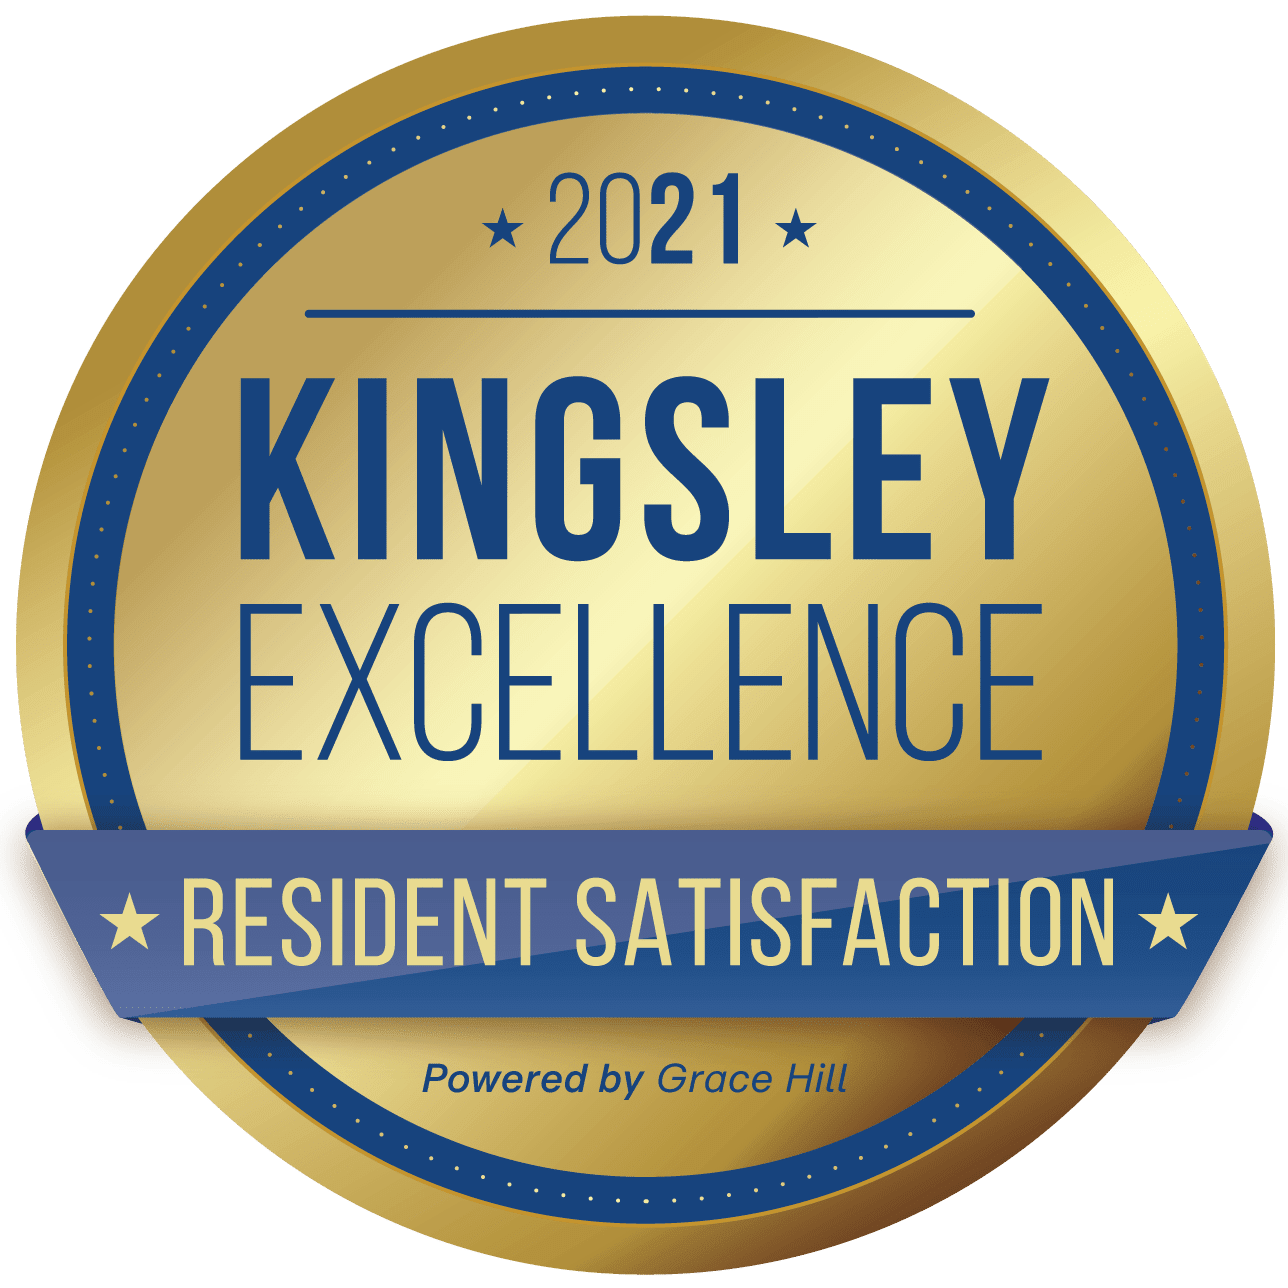 Kingsley Excellence Resident Satisfaction Award